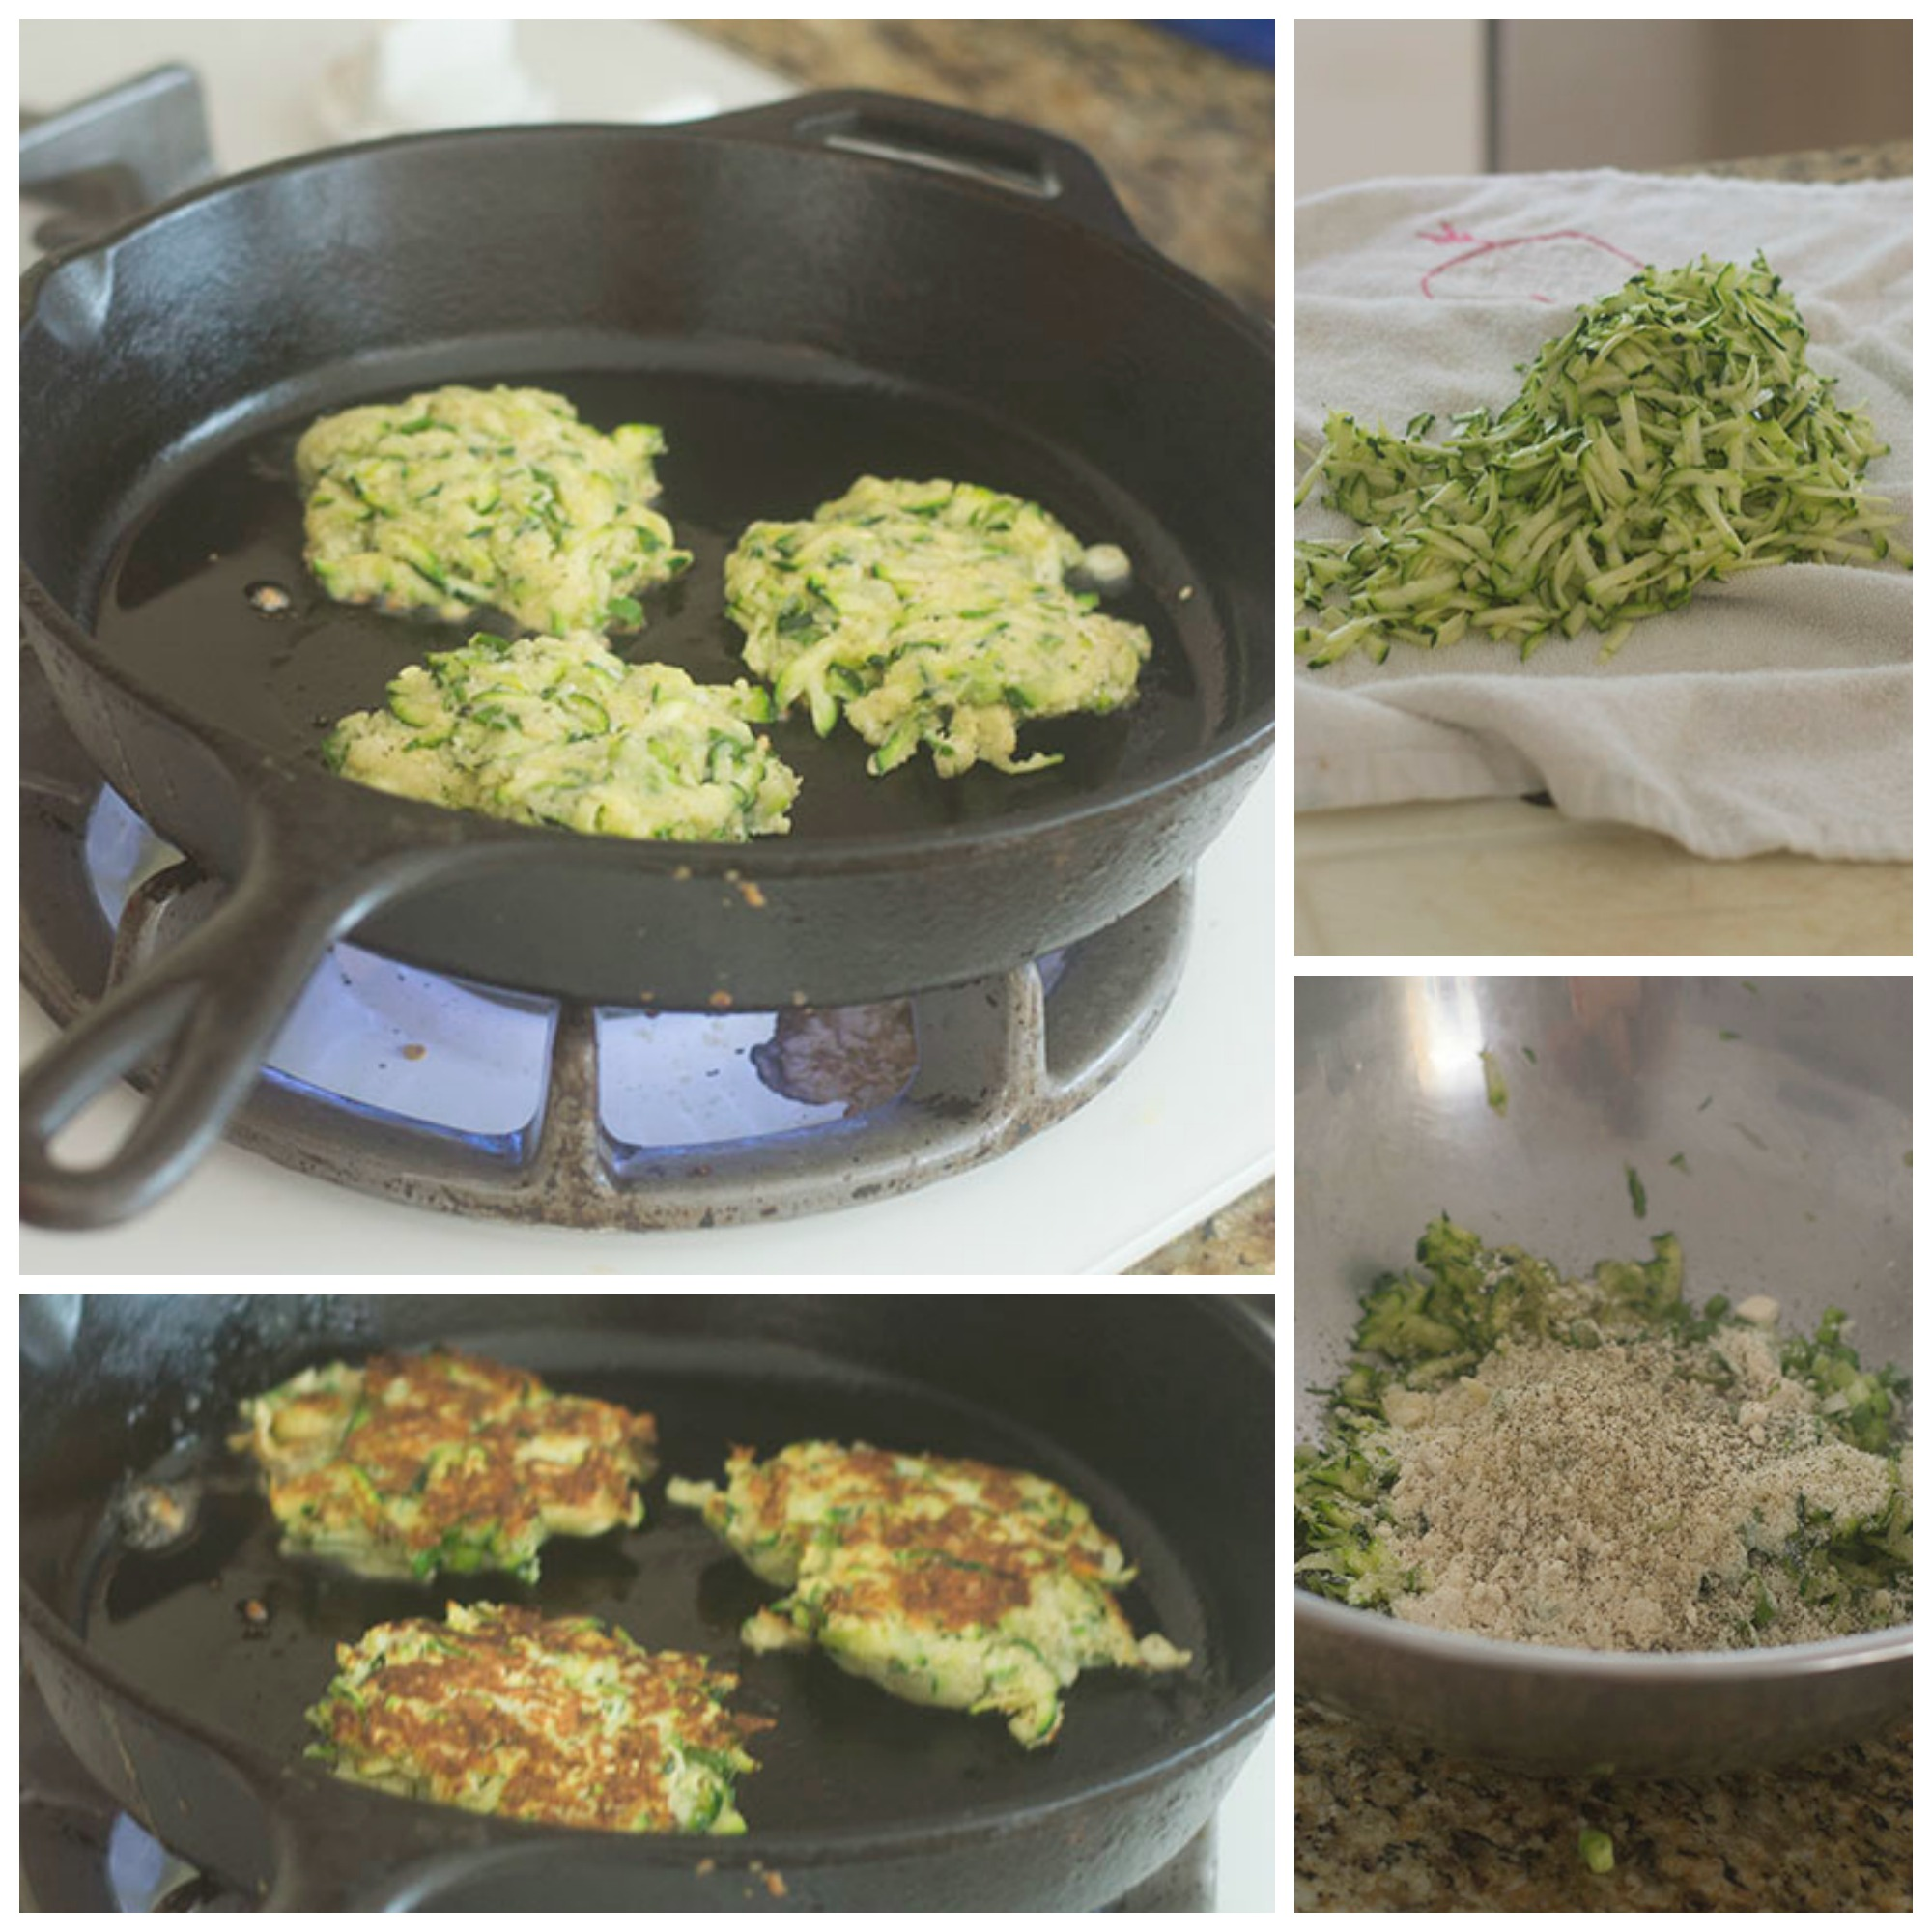 Putting the Zucchini Fritters Together